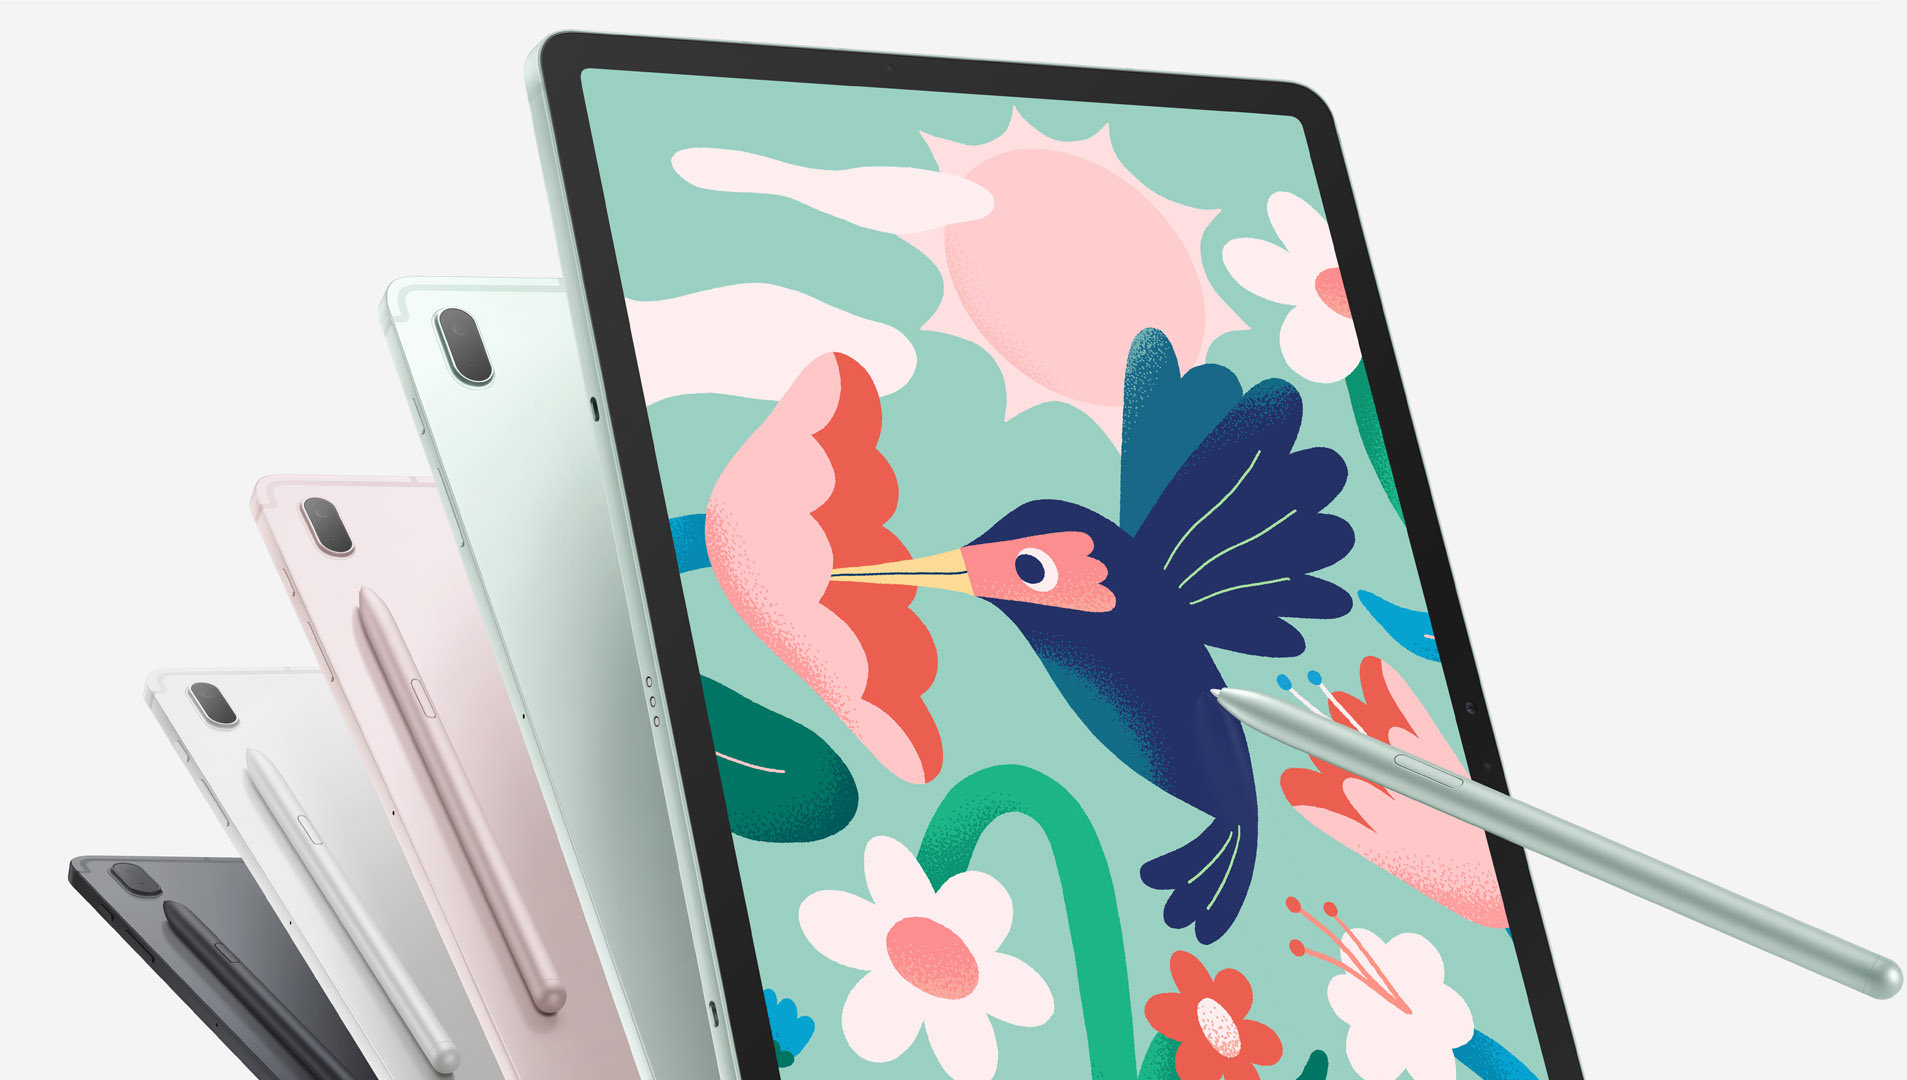 Samsung's affordable Tab A7 Lite and Tab S7 FE make their way to India